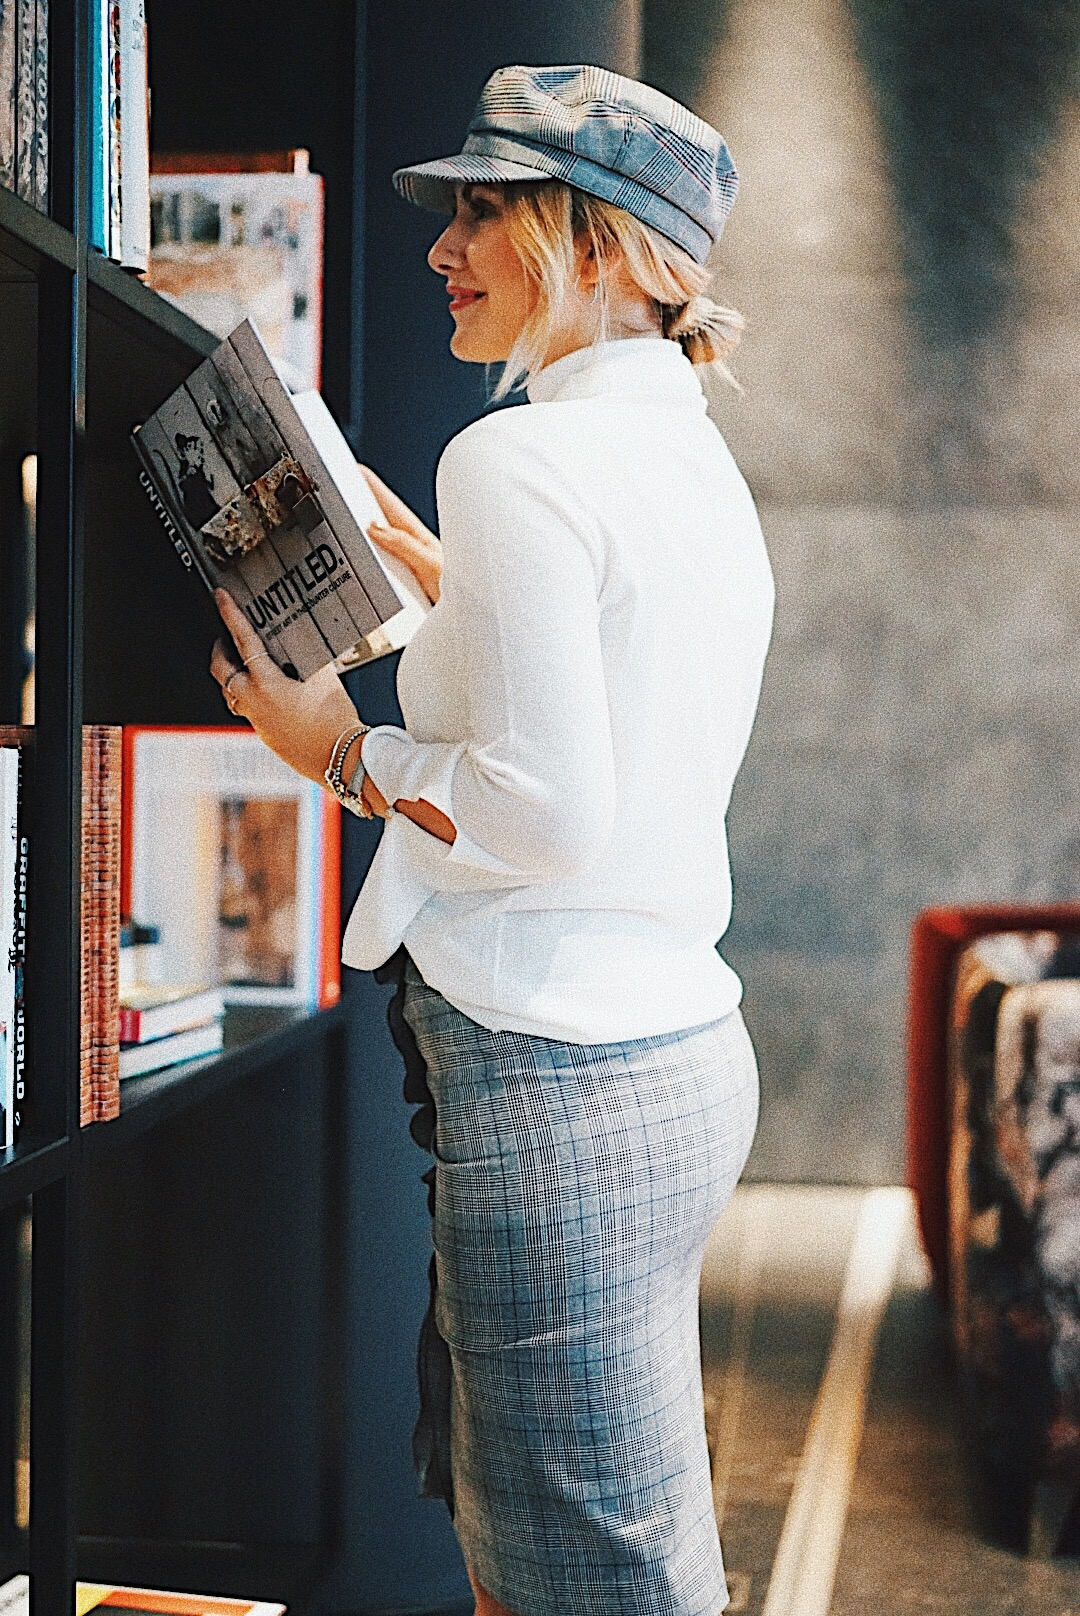 business-look-esprit-3-looks-inspiration-bleistiftrock-karomuster-look-arbeitslook-meetlng-fashion-for-ffranzy-modeblogger-fashionblogger-cologne-koeln